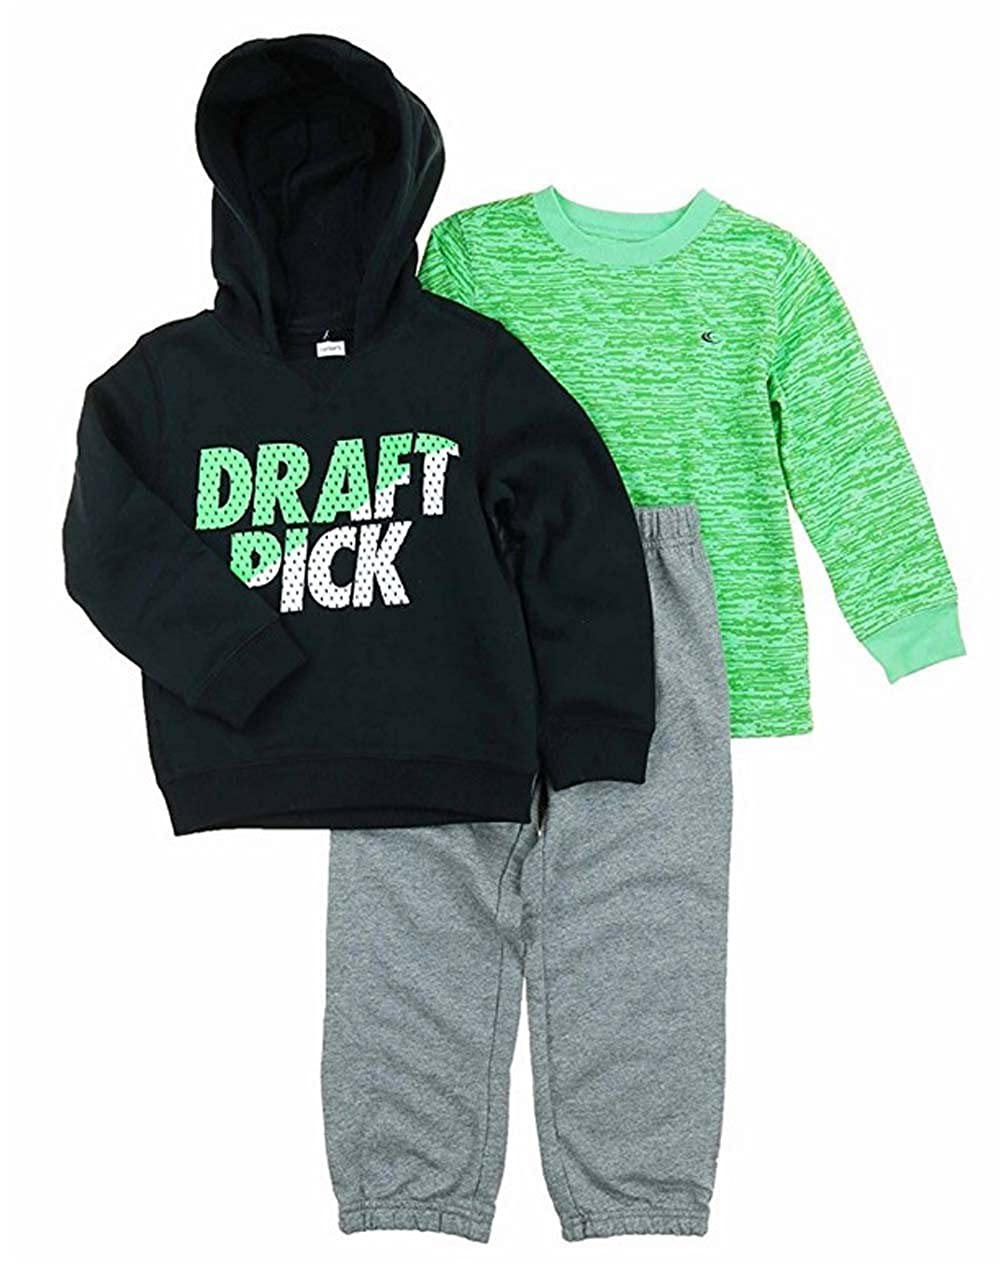 Jacket and Shirt 01 Carters Boys 3-Piece Set Pants Draft Pick 18 Months,